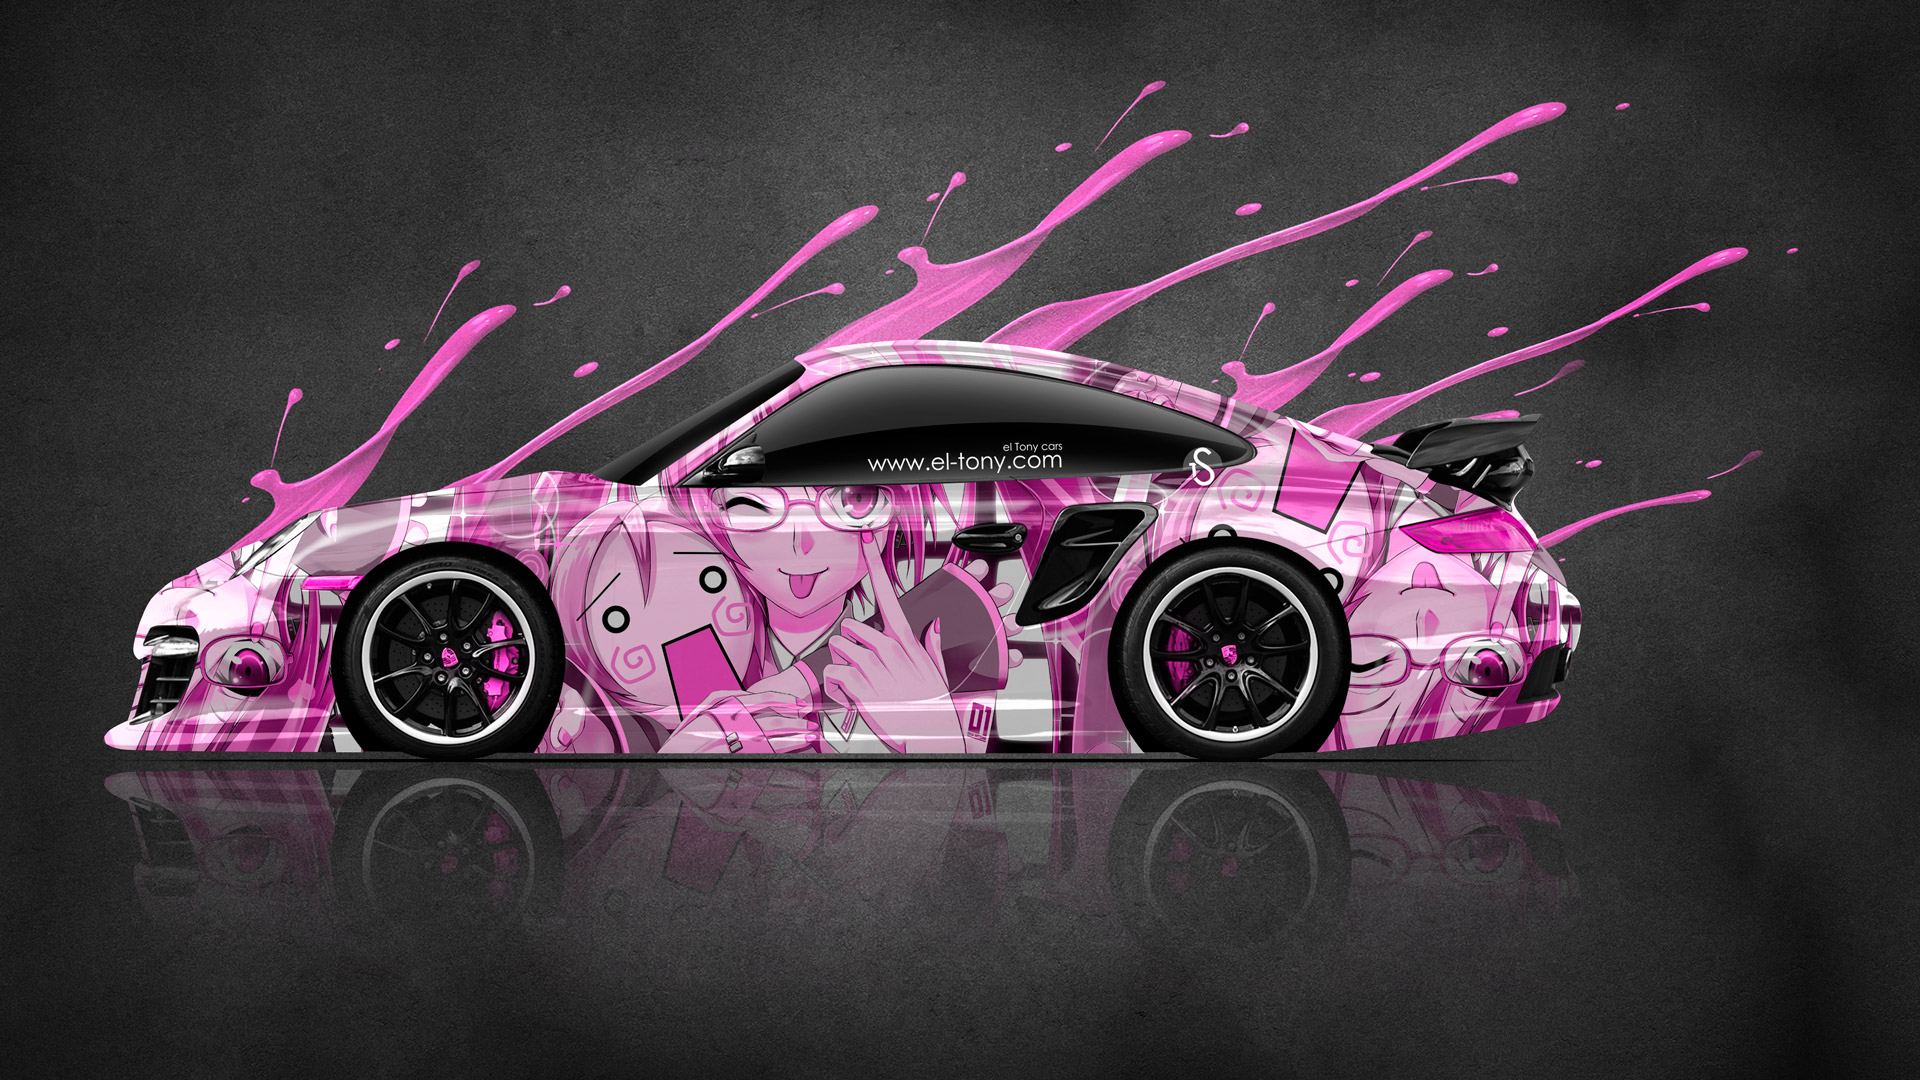 porsche 911 gt2 anime aerography live colors car 2014 el tony. Black Bedroom Furniture Sets. Home Design Ideas